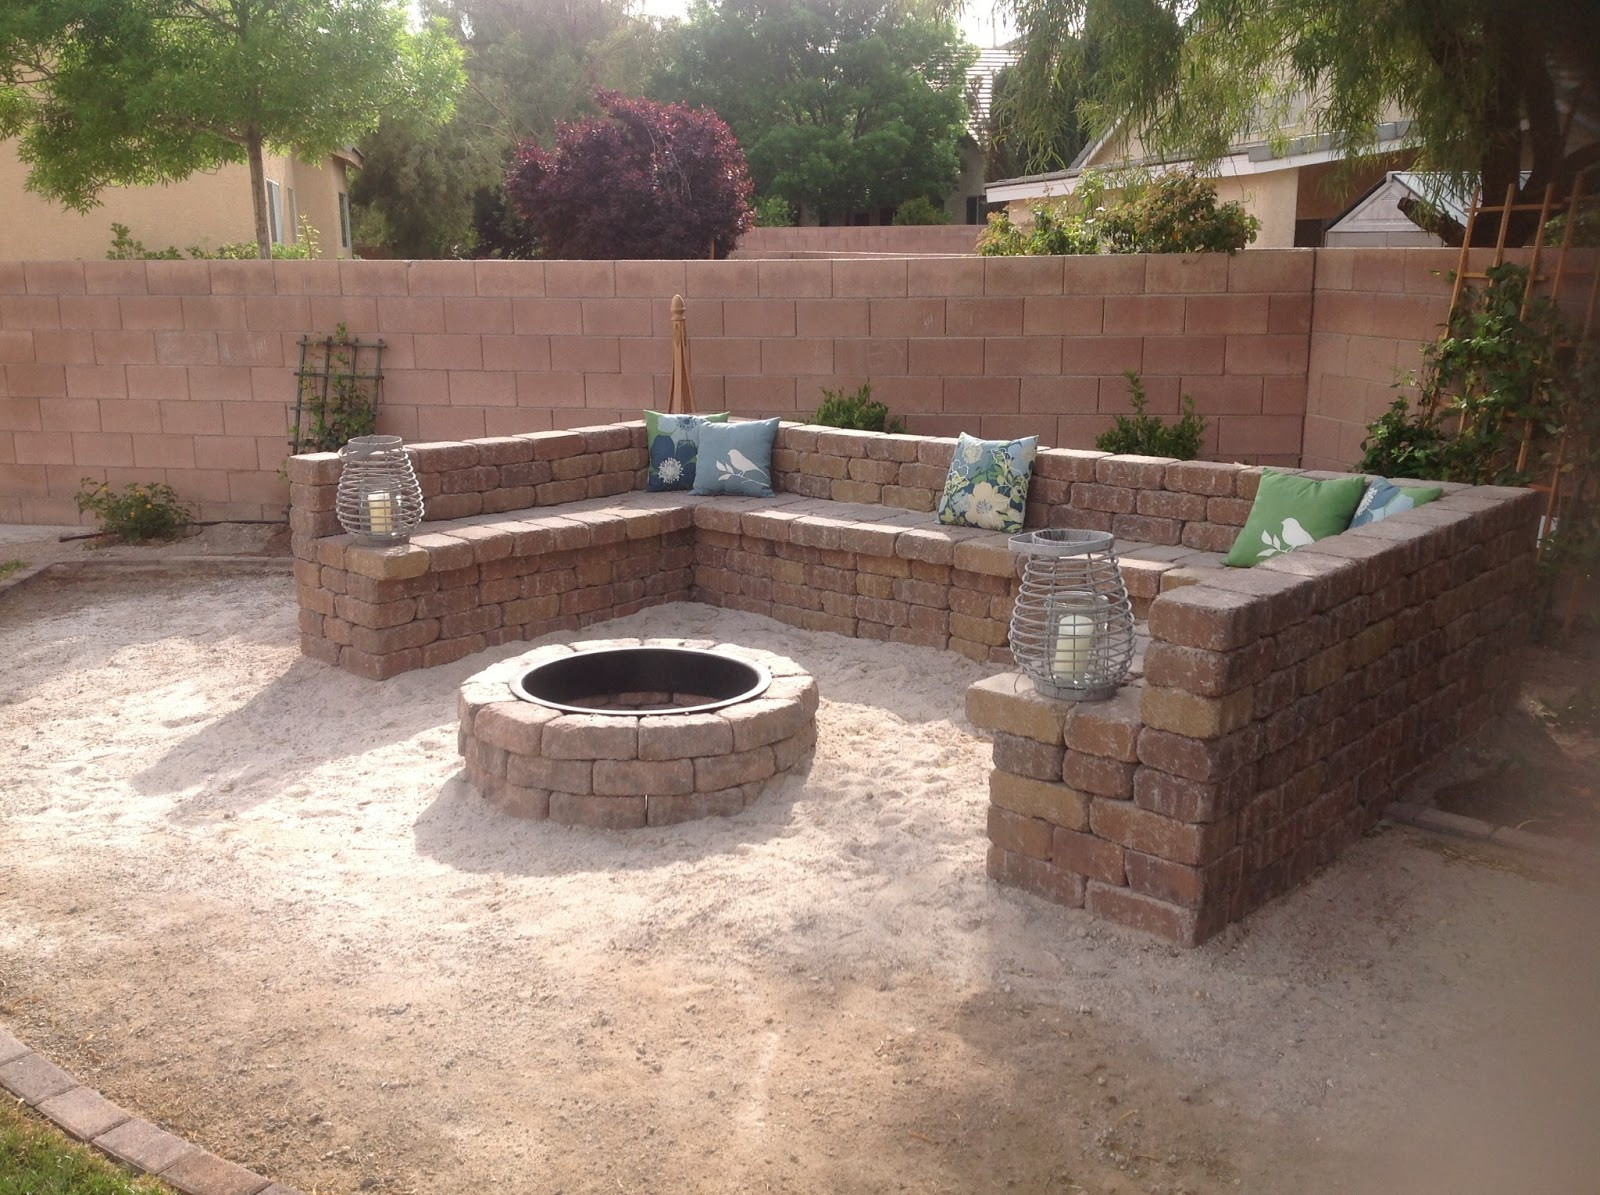 Best ideas about Fire Pits DIY . Save or Pin The Loveland9 My fire pit Now.